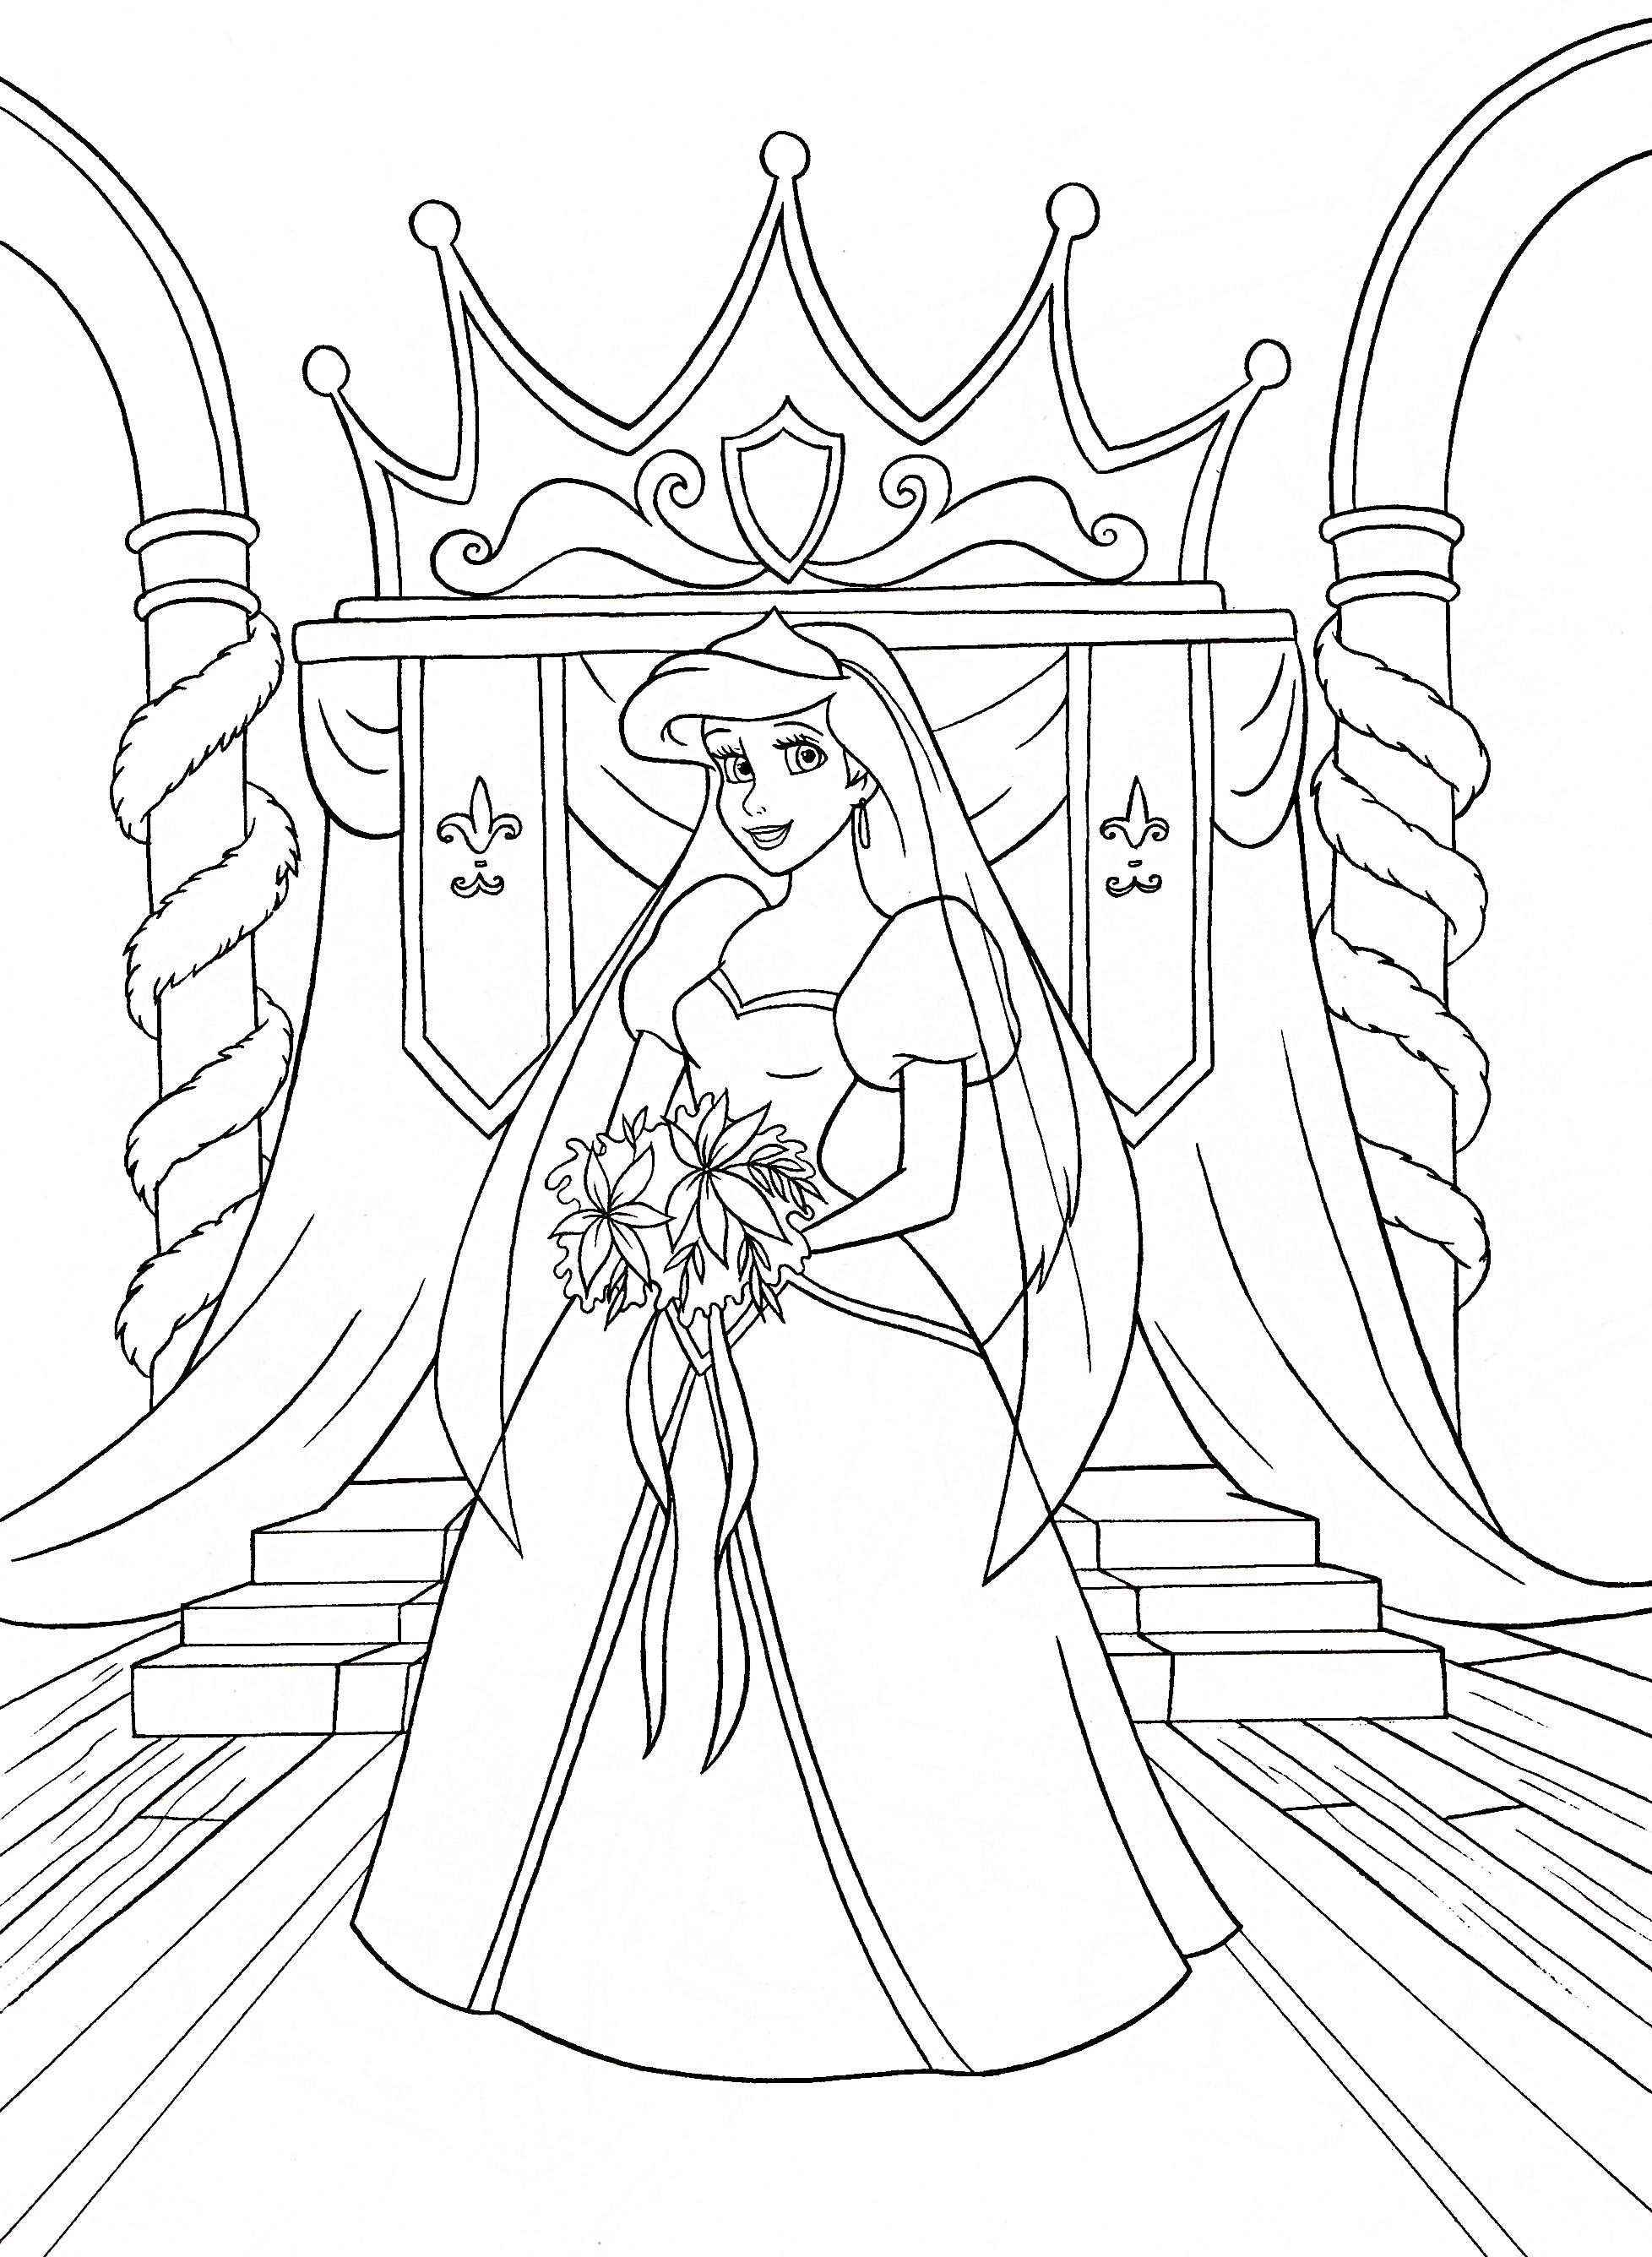 Official disney princess coloring pages